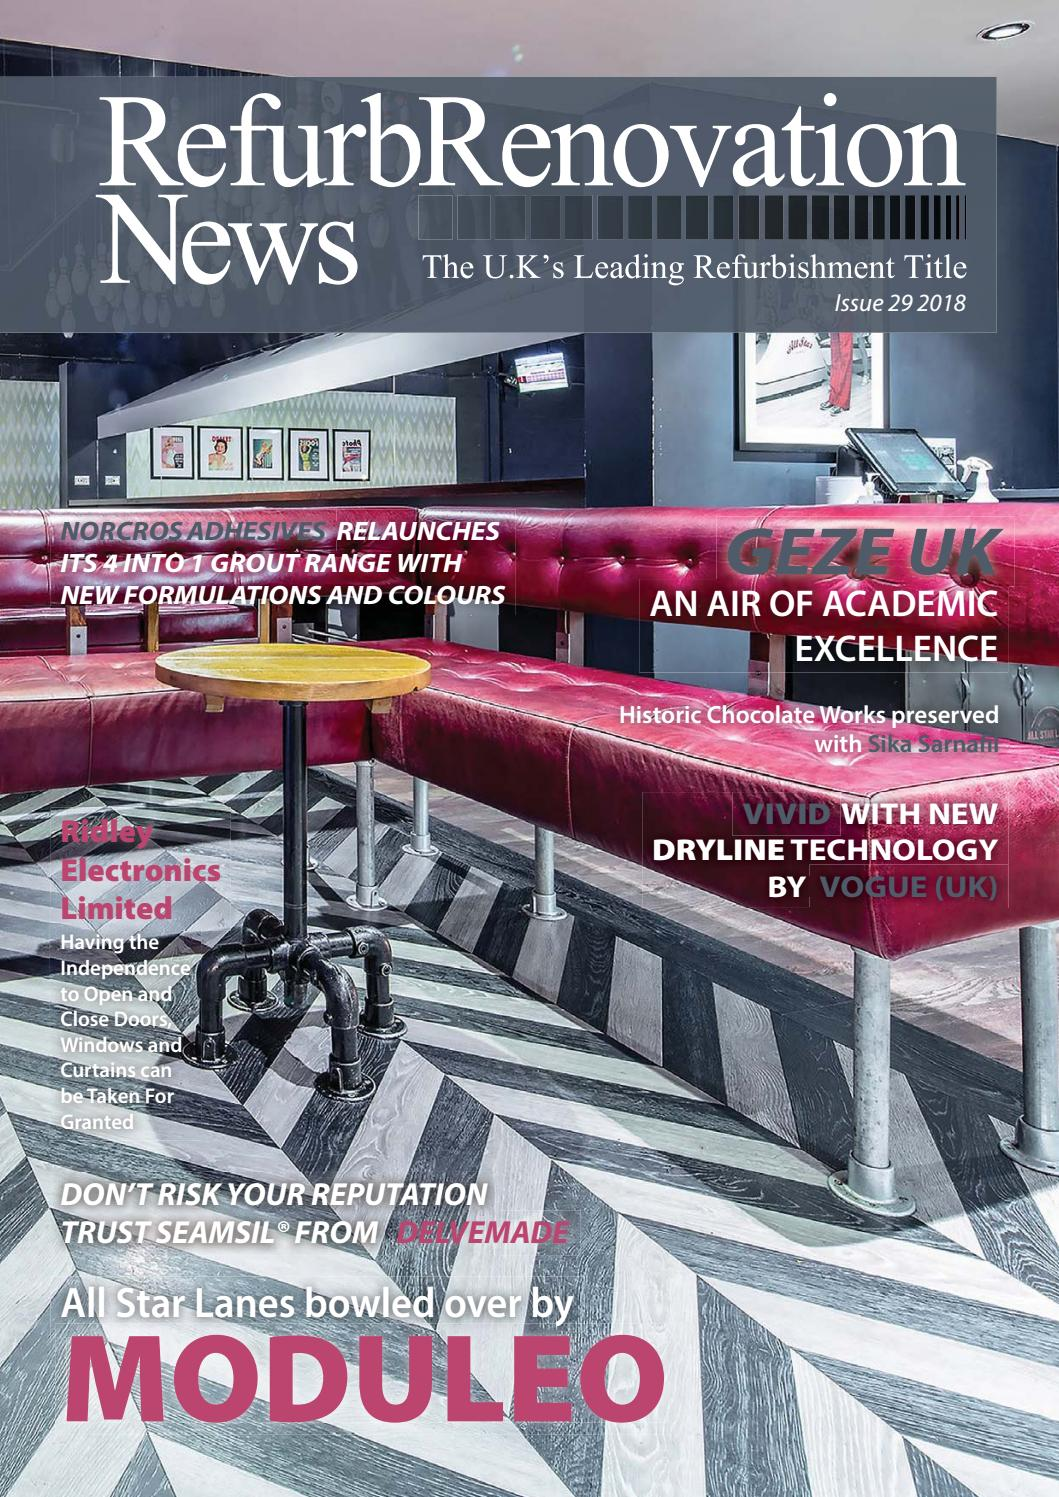 8928d458643d Refurb Renovation News Issue 29 by Lapthorn Media - issuu